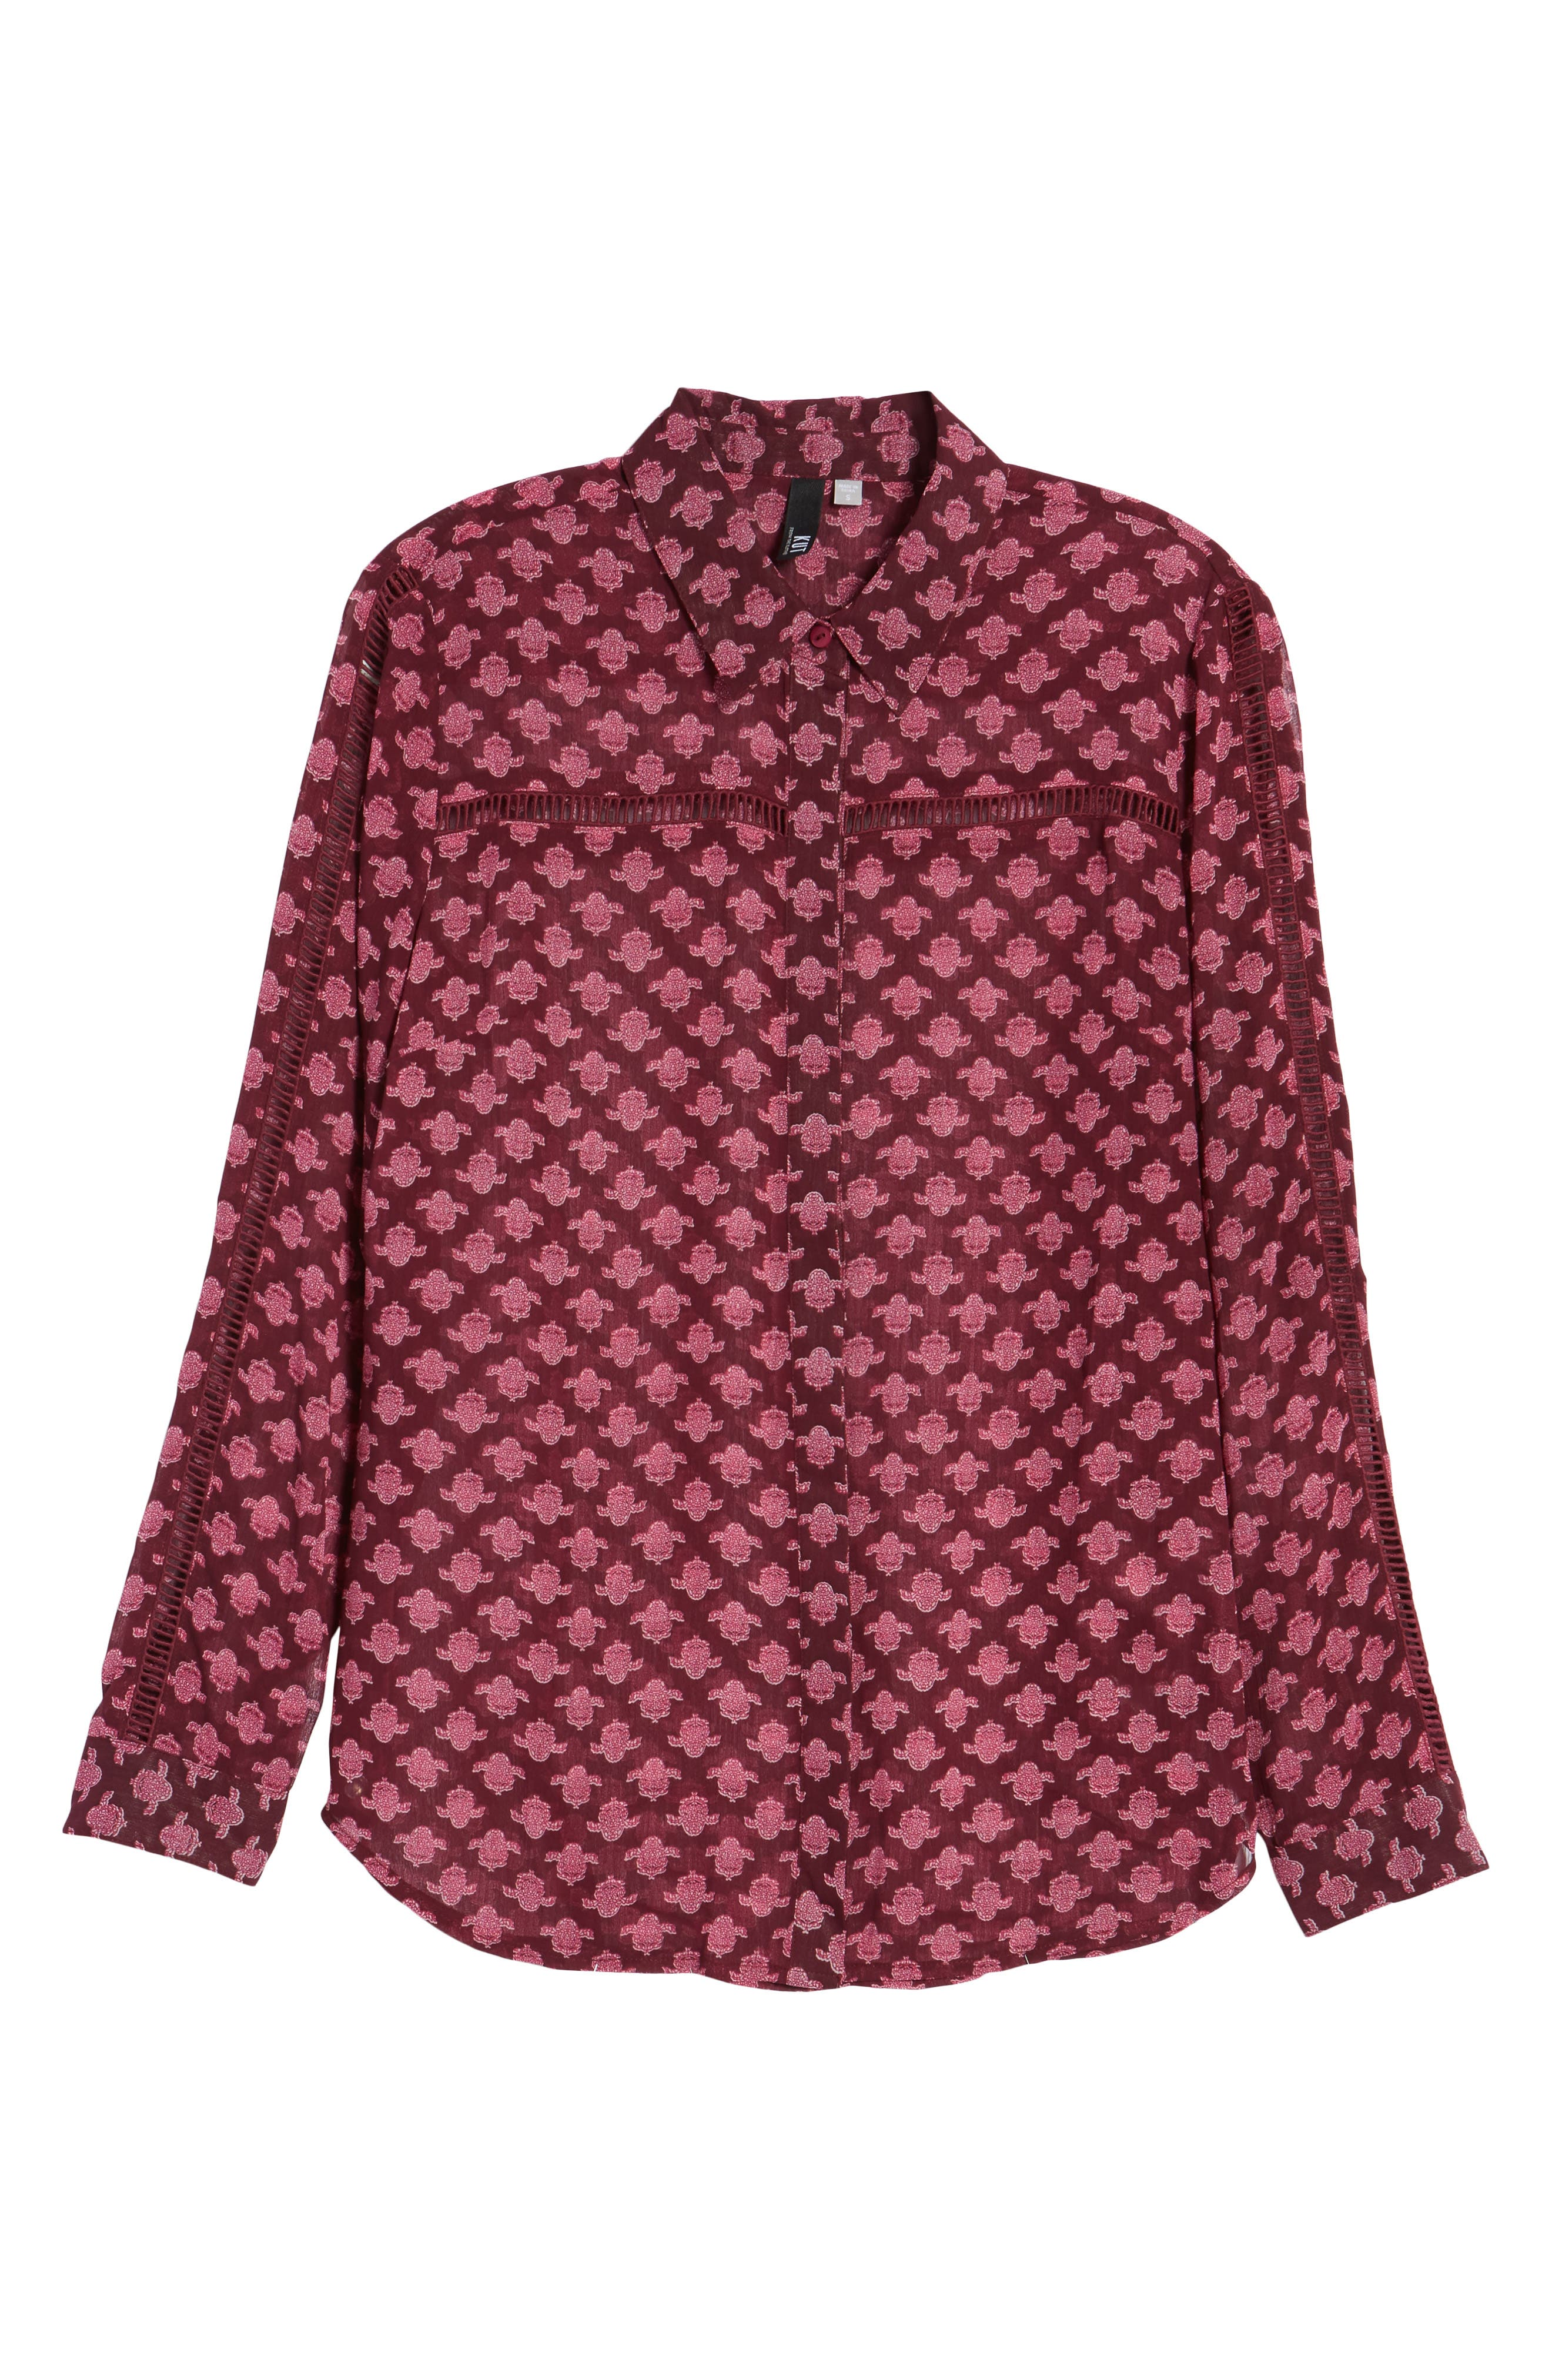 Eve Print Semi-Sheer Blouse,                             Alternate thumbnail 6, color,                             Dark Berry